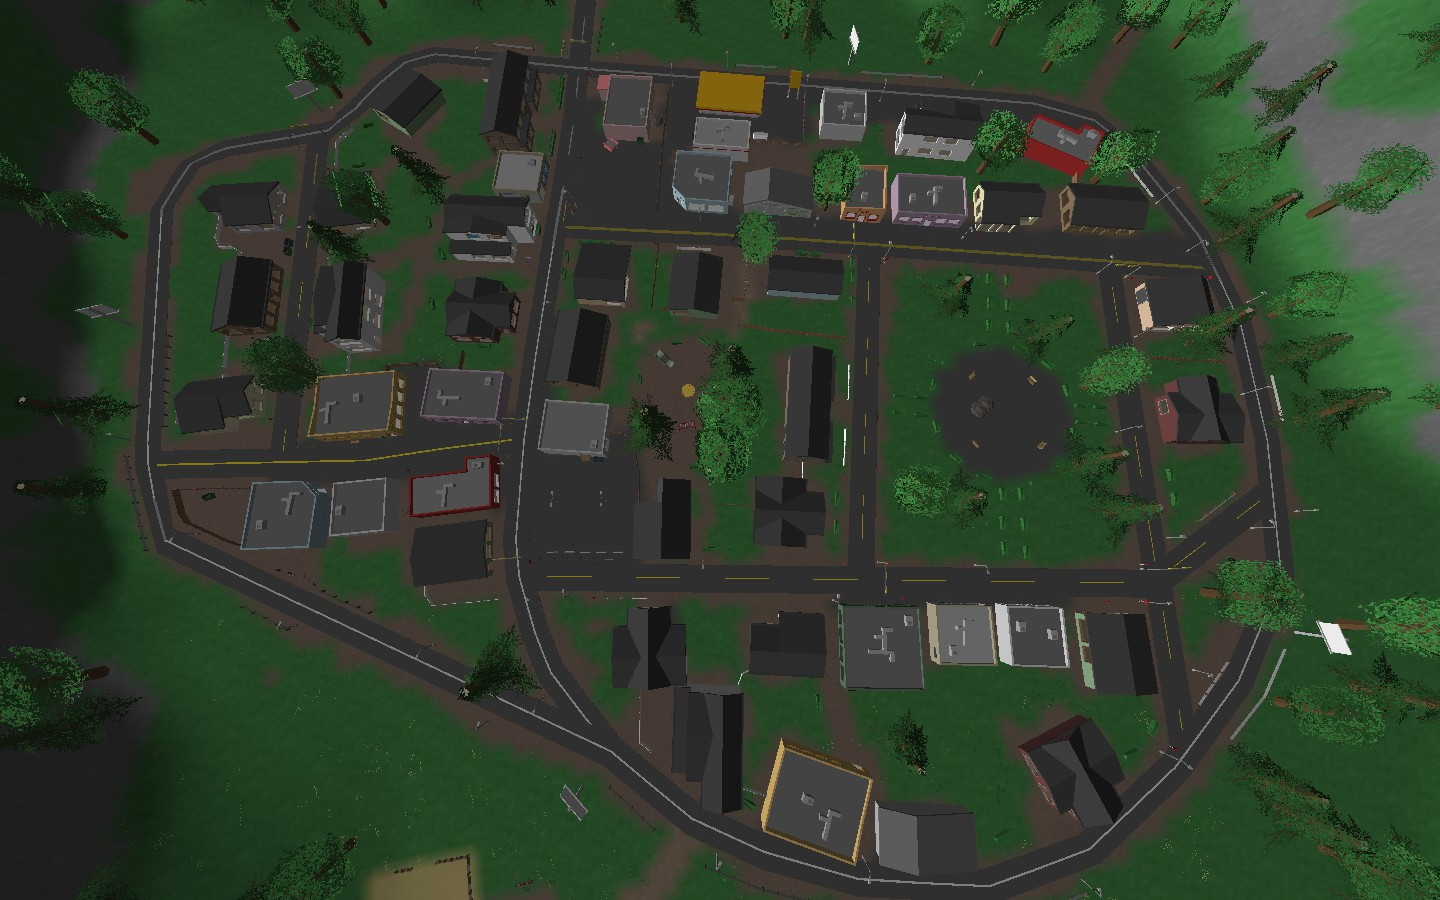 Unturned Last Of Us Map Download The Last Of UsUnturnedPlanet V - Spooderman the last of us map unturned